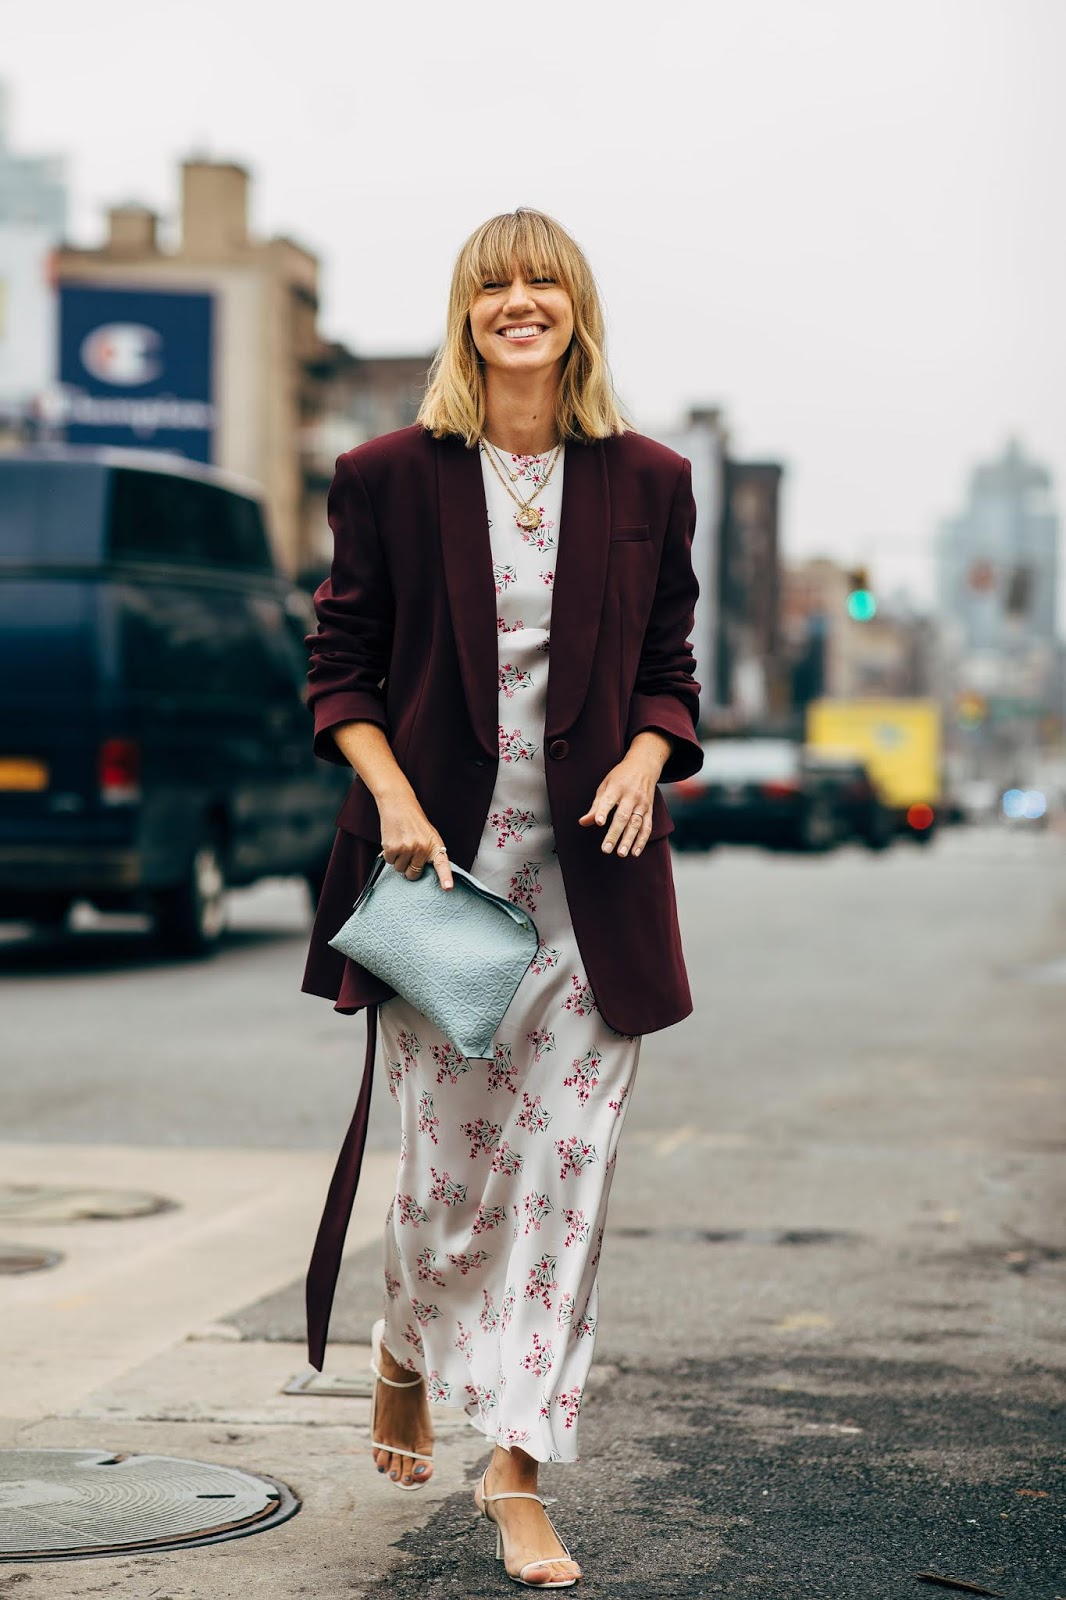 How to Wear a Floral Dress for Fall — Lisa Aiken Street Style